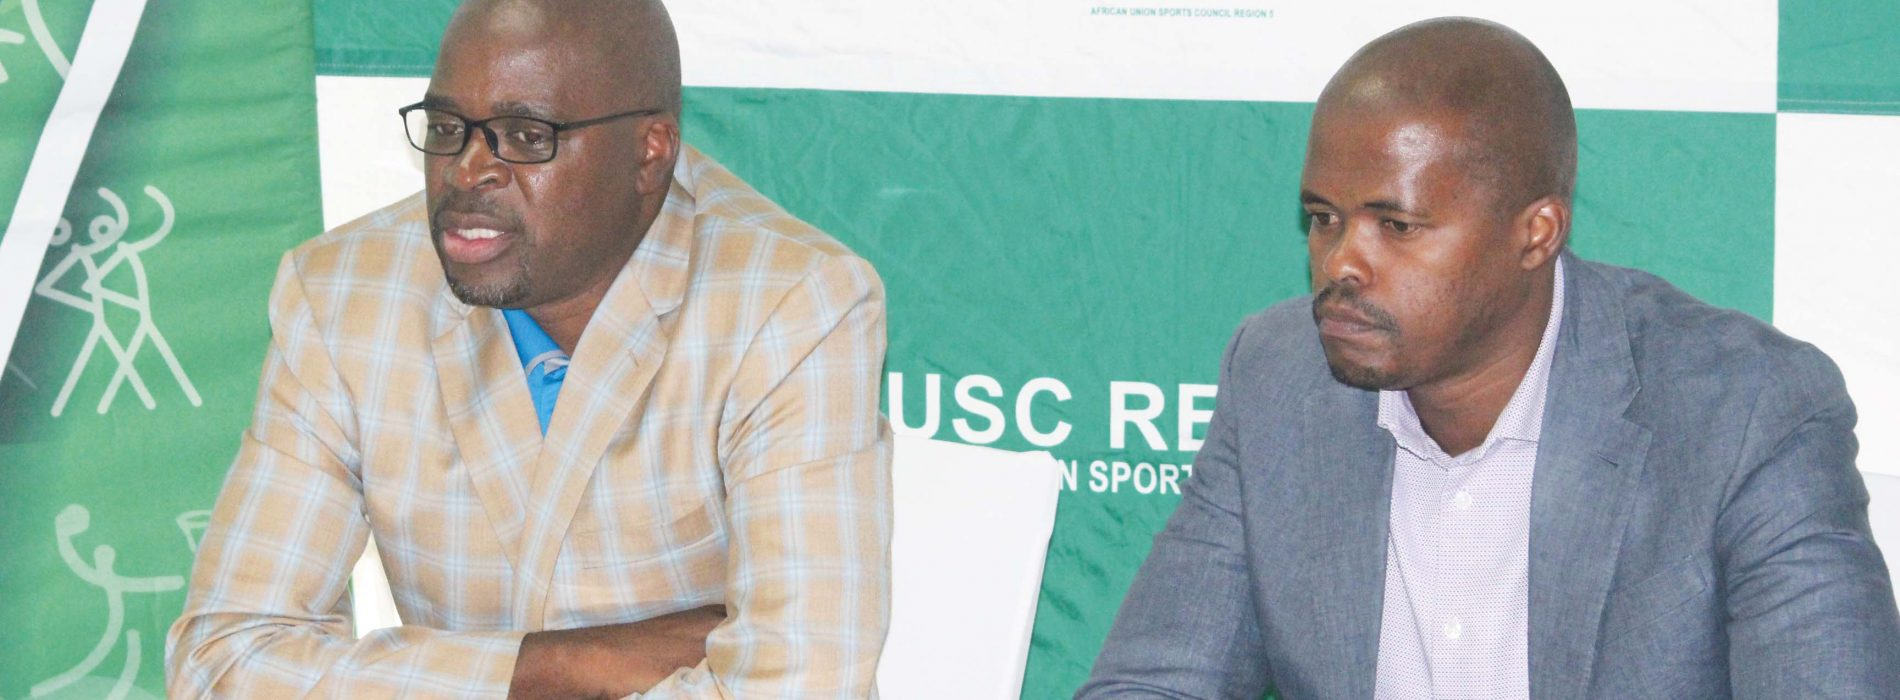 AUSC set to meet in Maseru